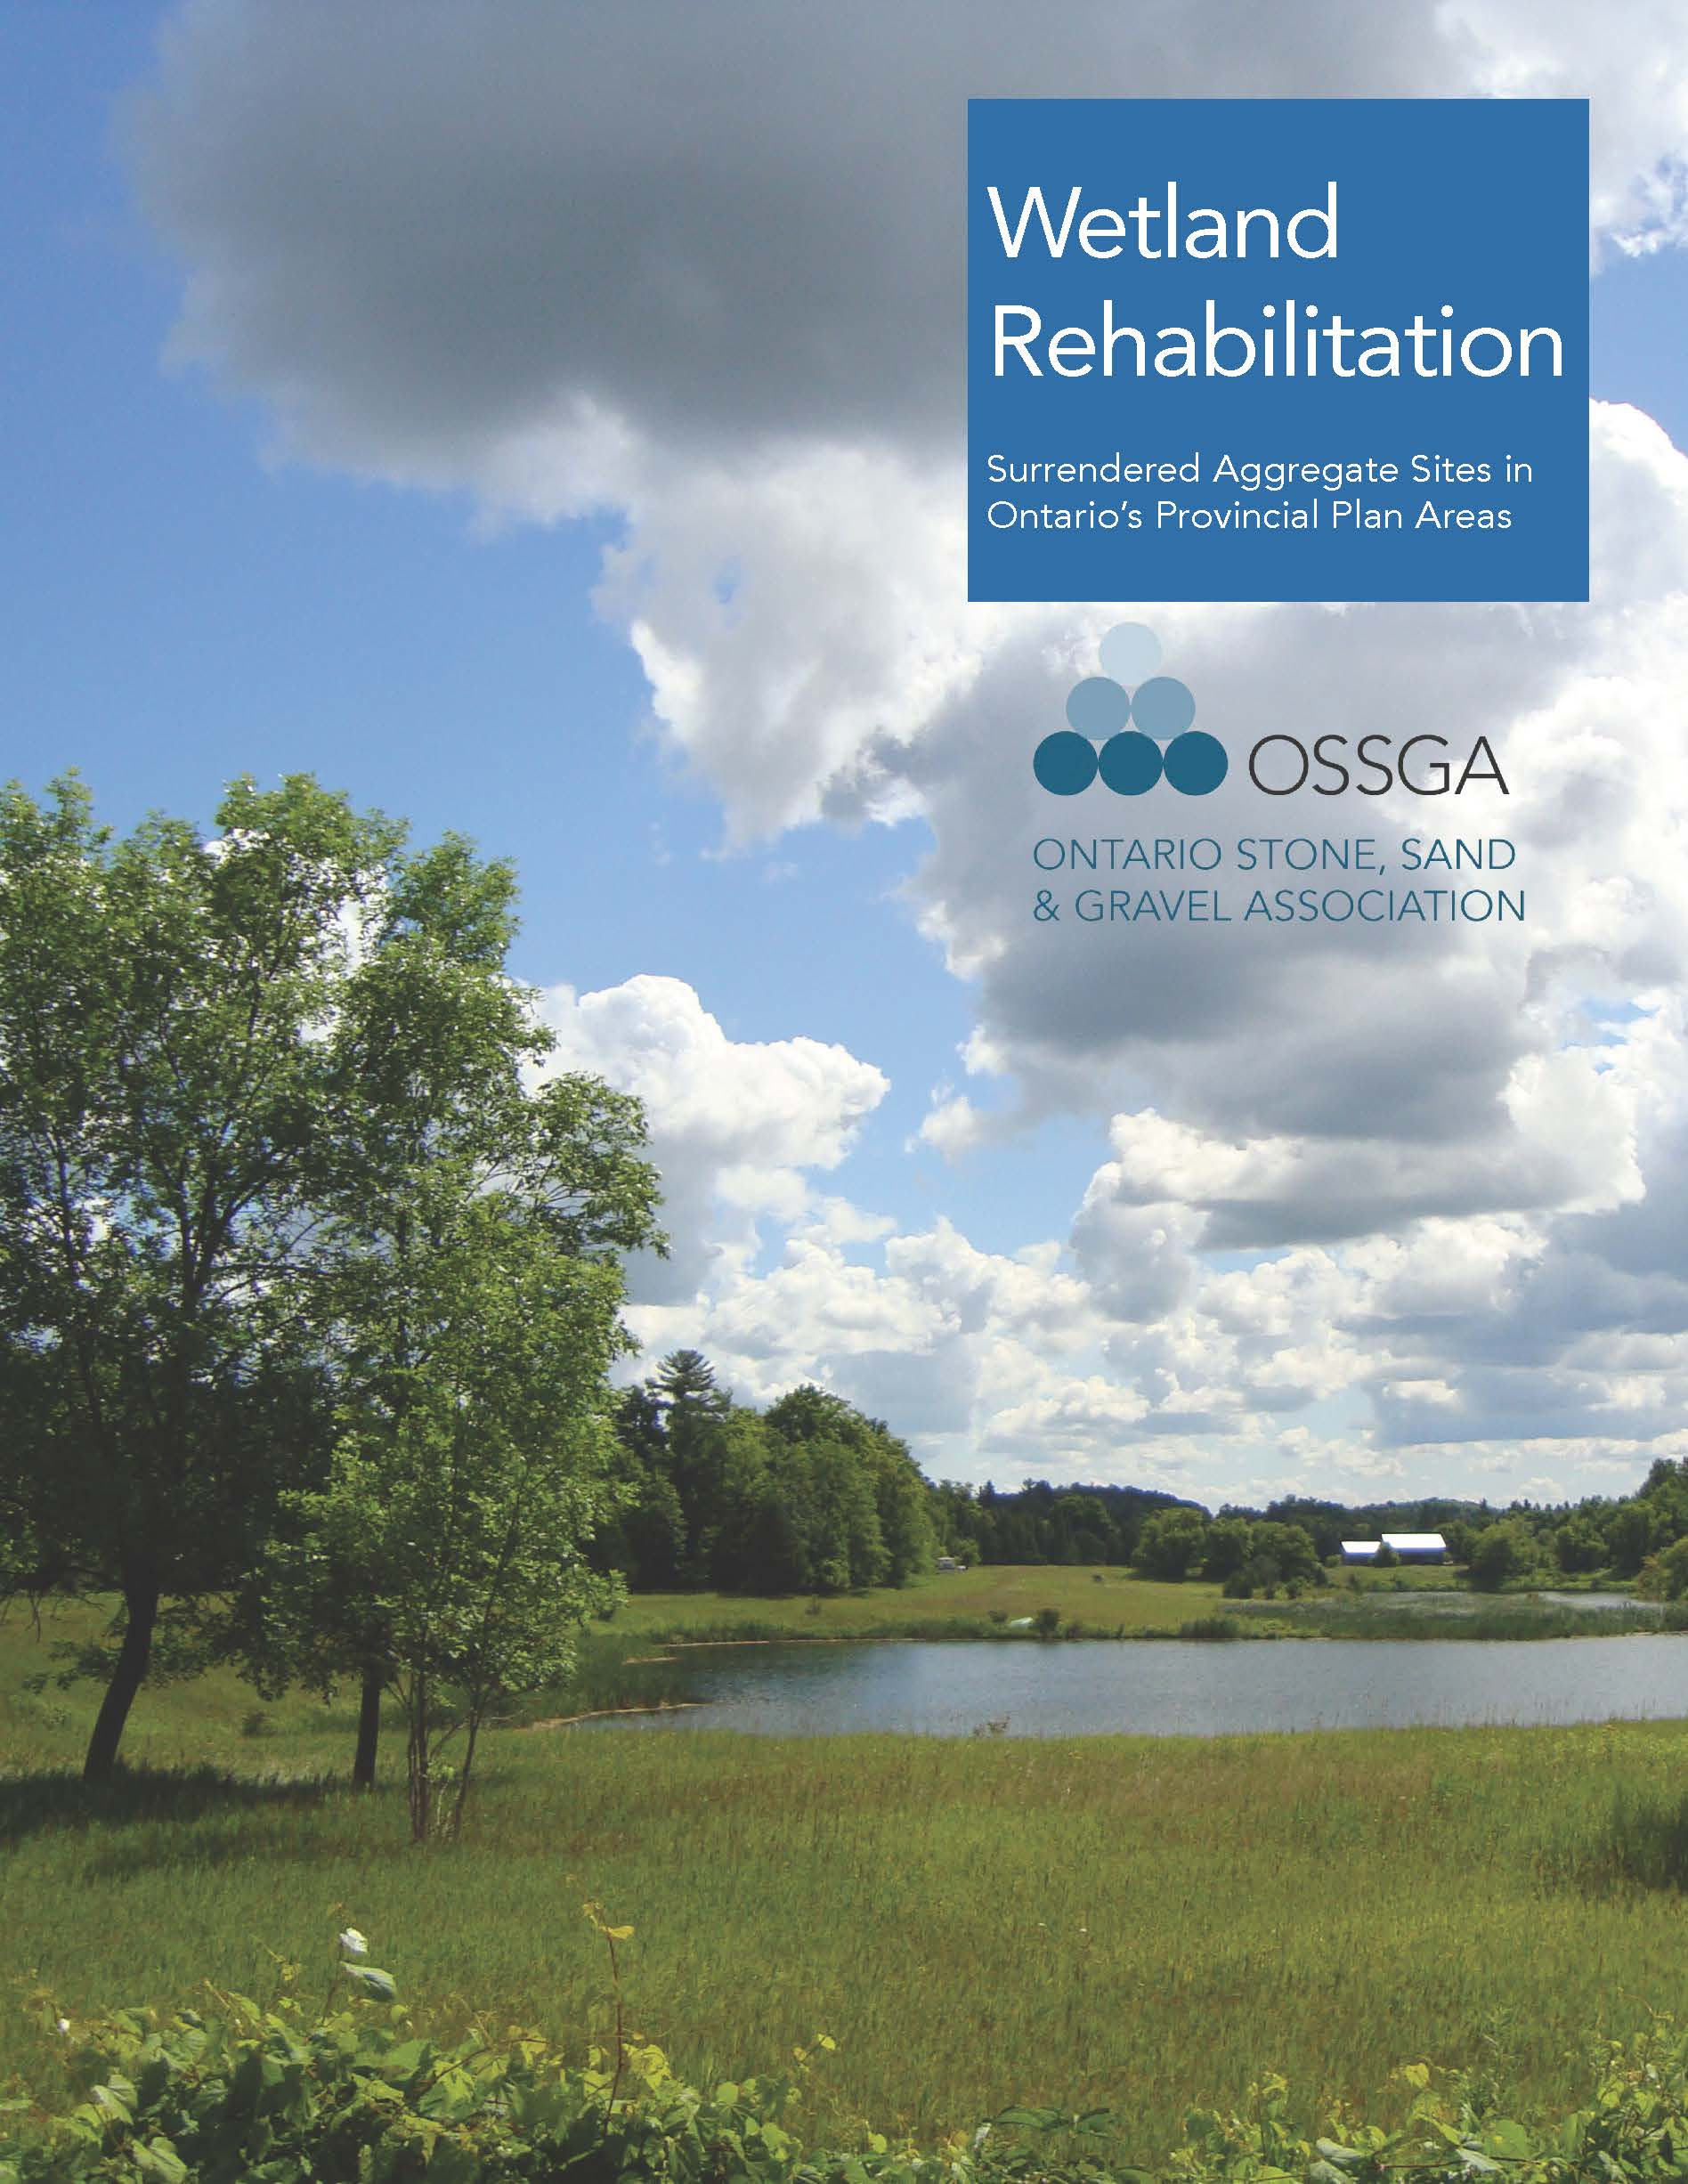 Read Study Phase I - OSSGA Rehabilitation Study Phase I 2017